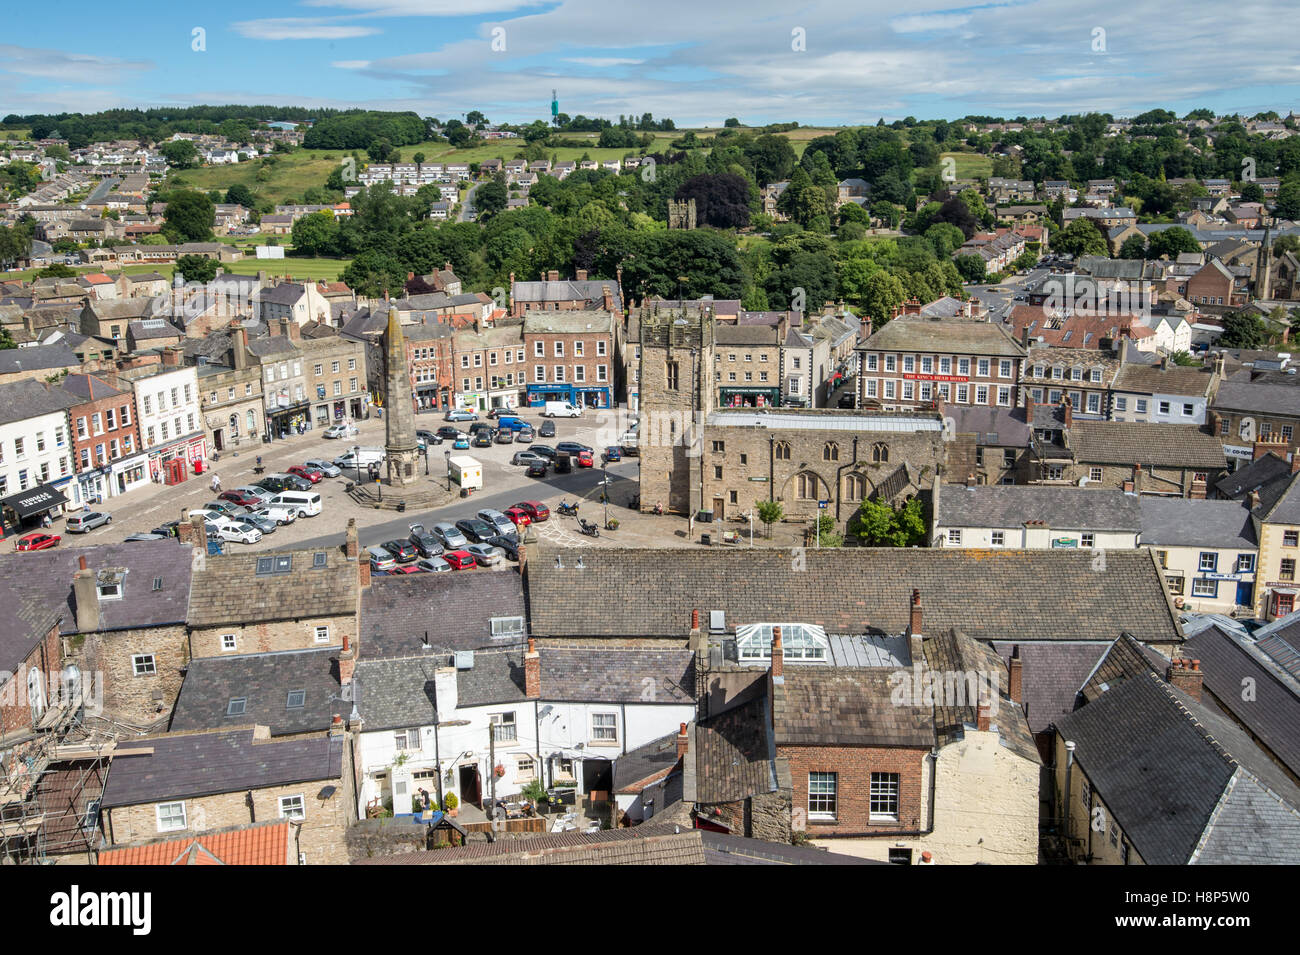 UK, England, Yorkshire, Richmond - Traditional architecture in the city of Richmond located in Northern Yorkshire. - Stock Image